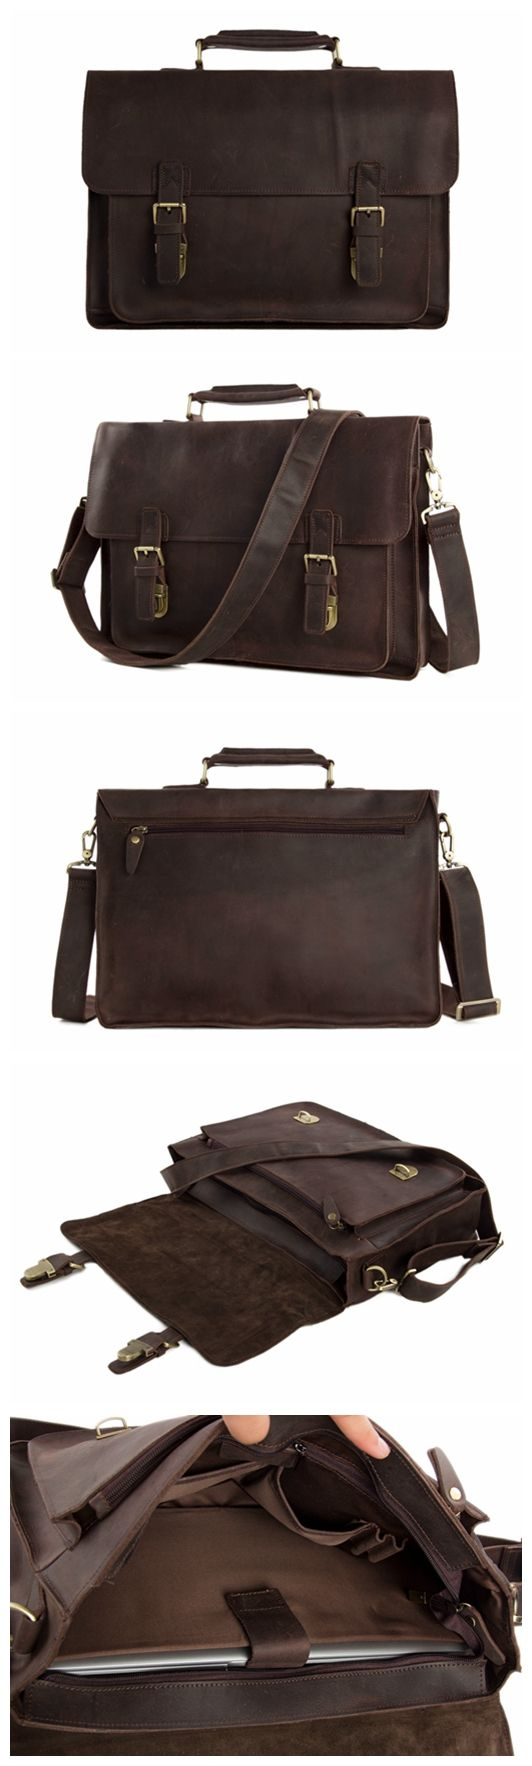 Handmade Vintage Genuine Leather Briefcase Messenger Bag Laptop Bag Men's Handbag